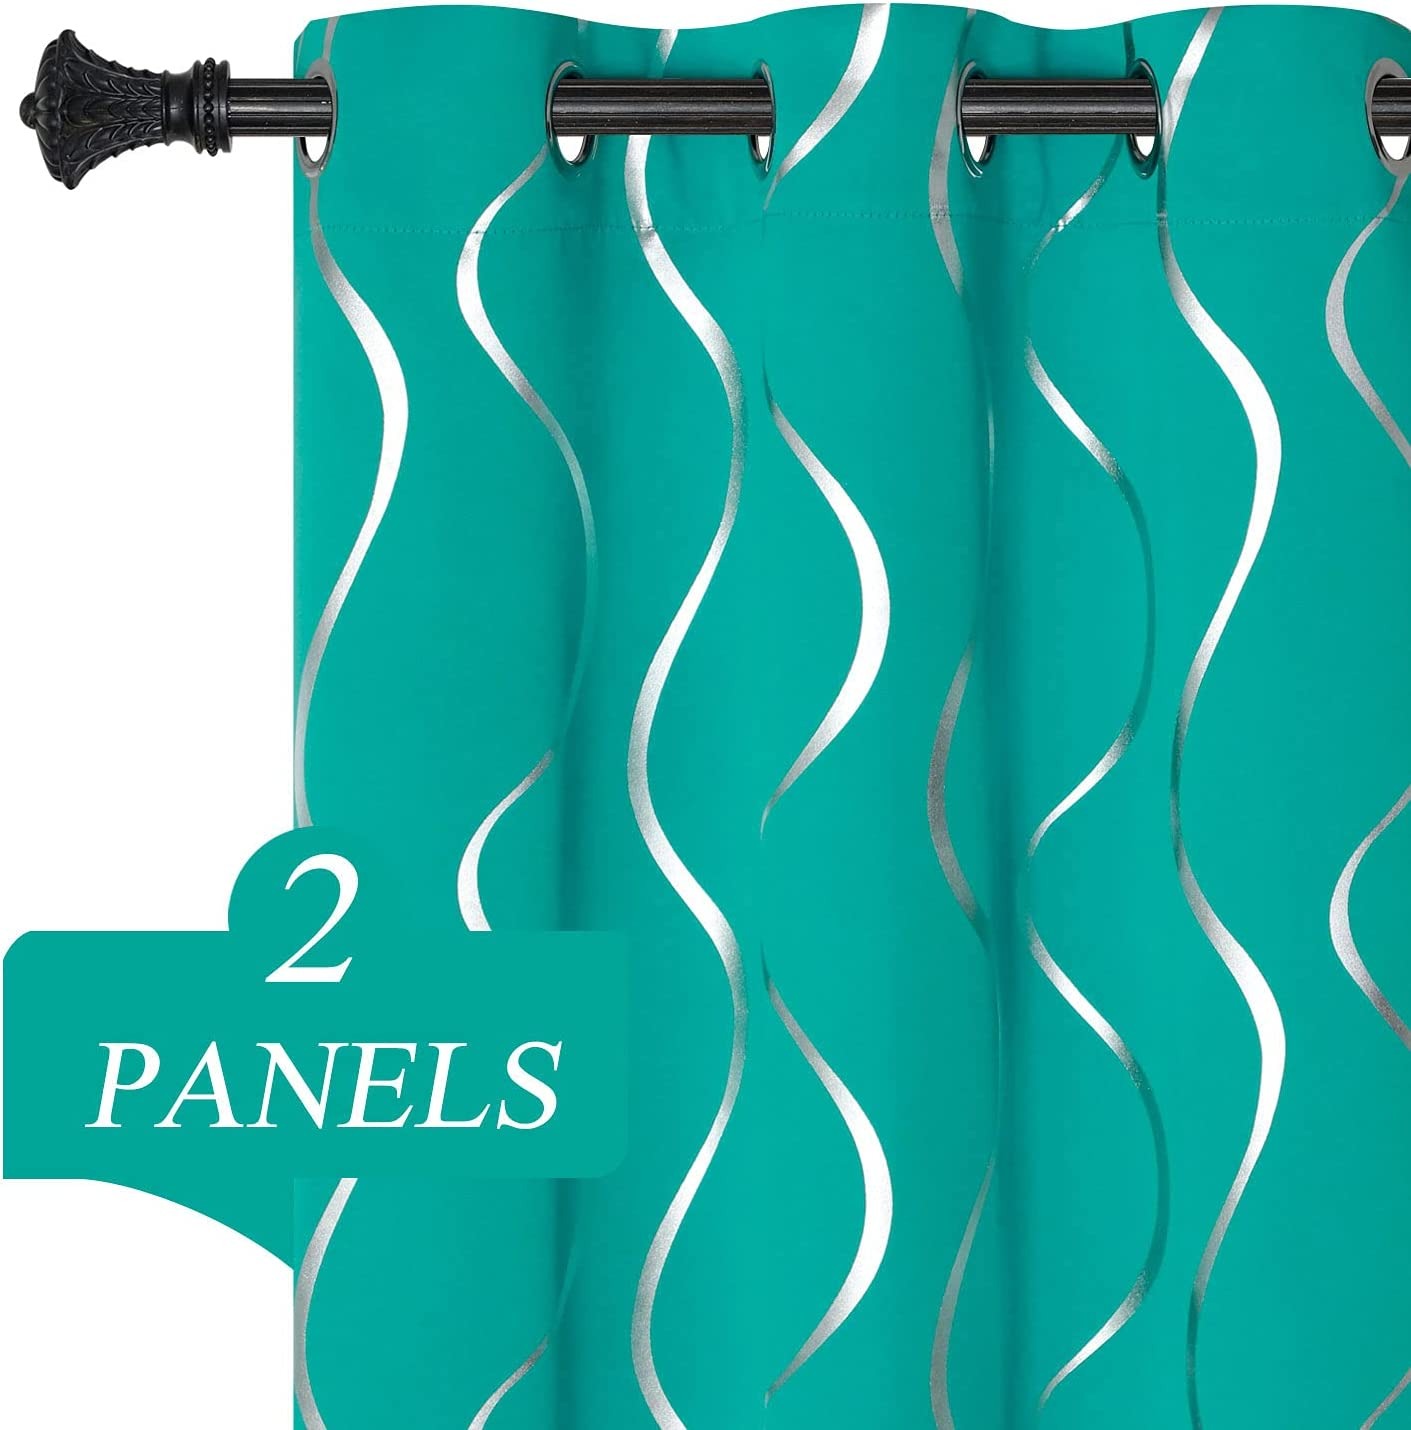 Estelar Kansas City Mall Textiler Teal Blackout Curtains Directly managed store Drapes Long 96 Inches